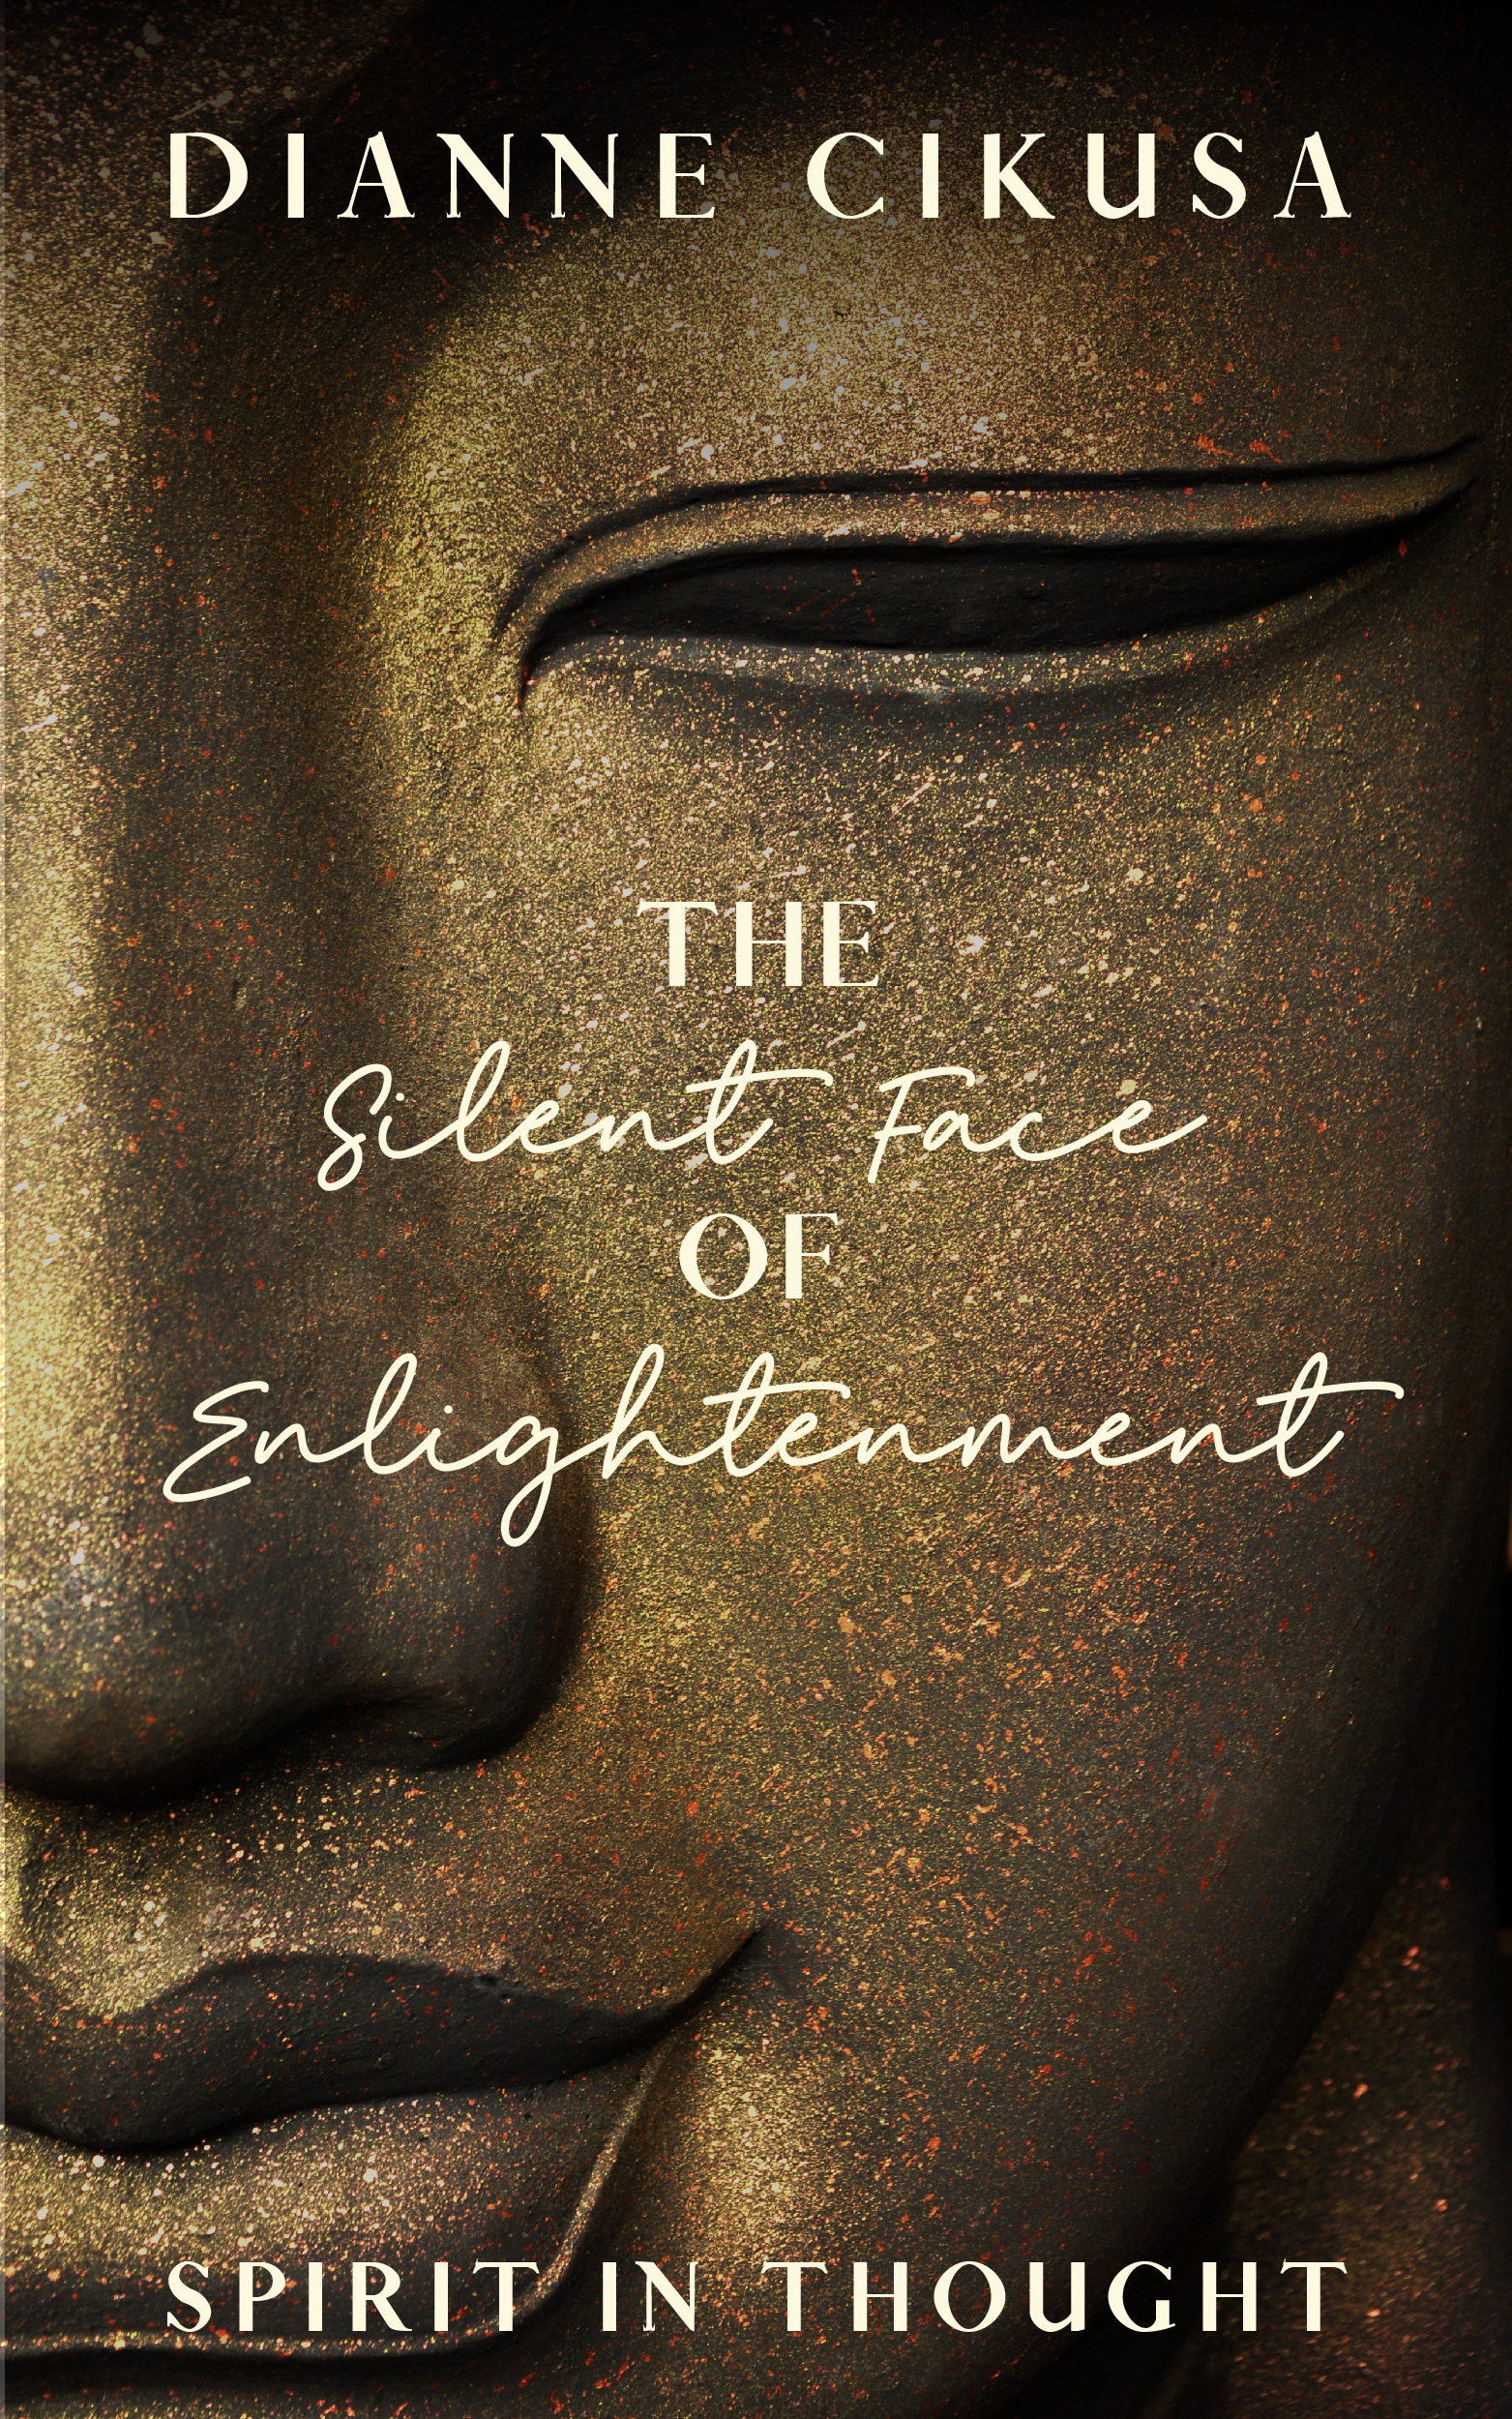 The Silent Face of Enlightenment